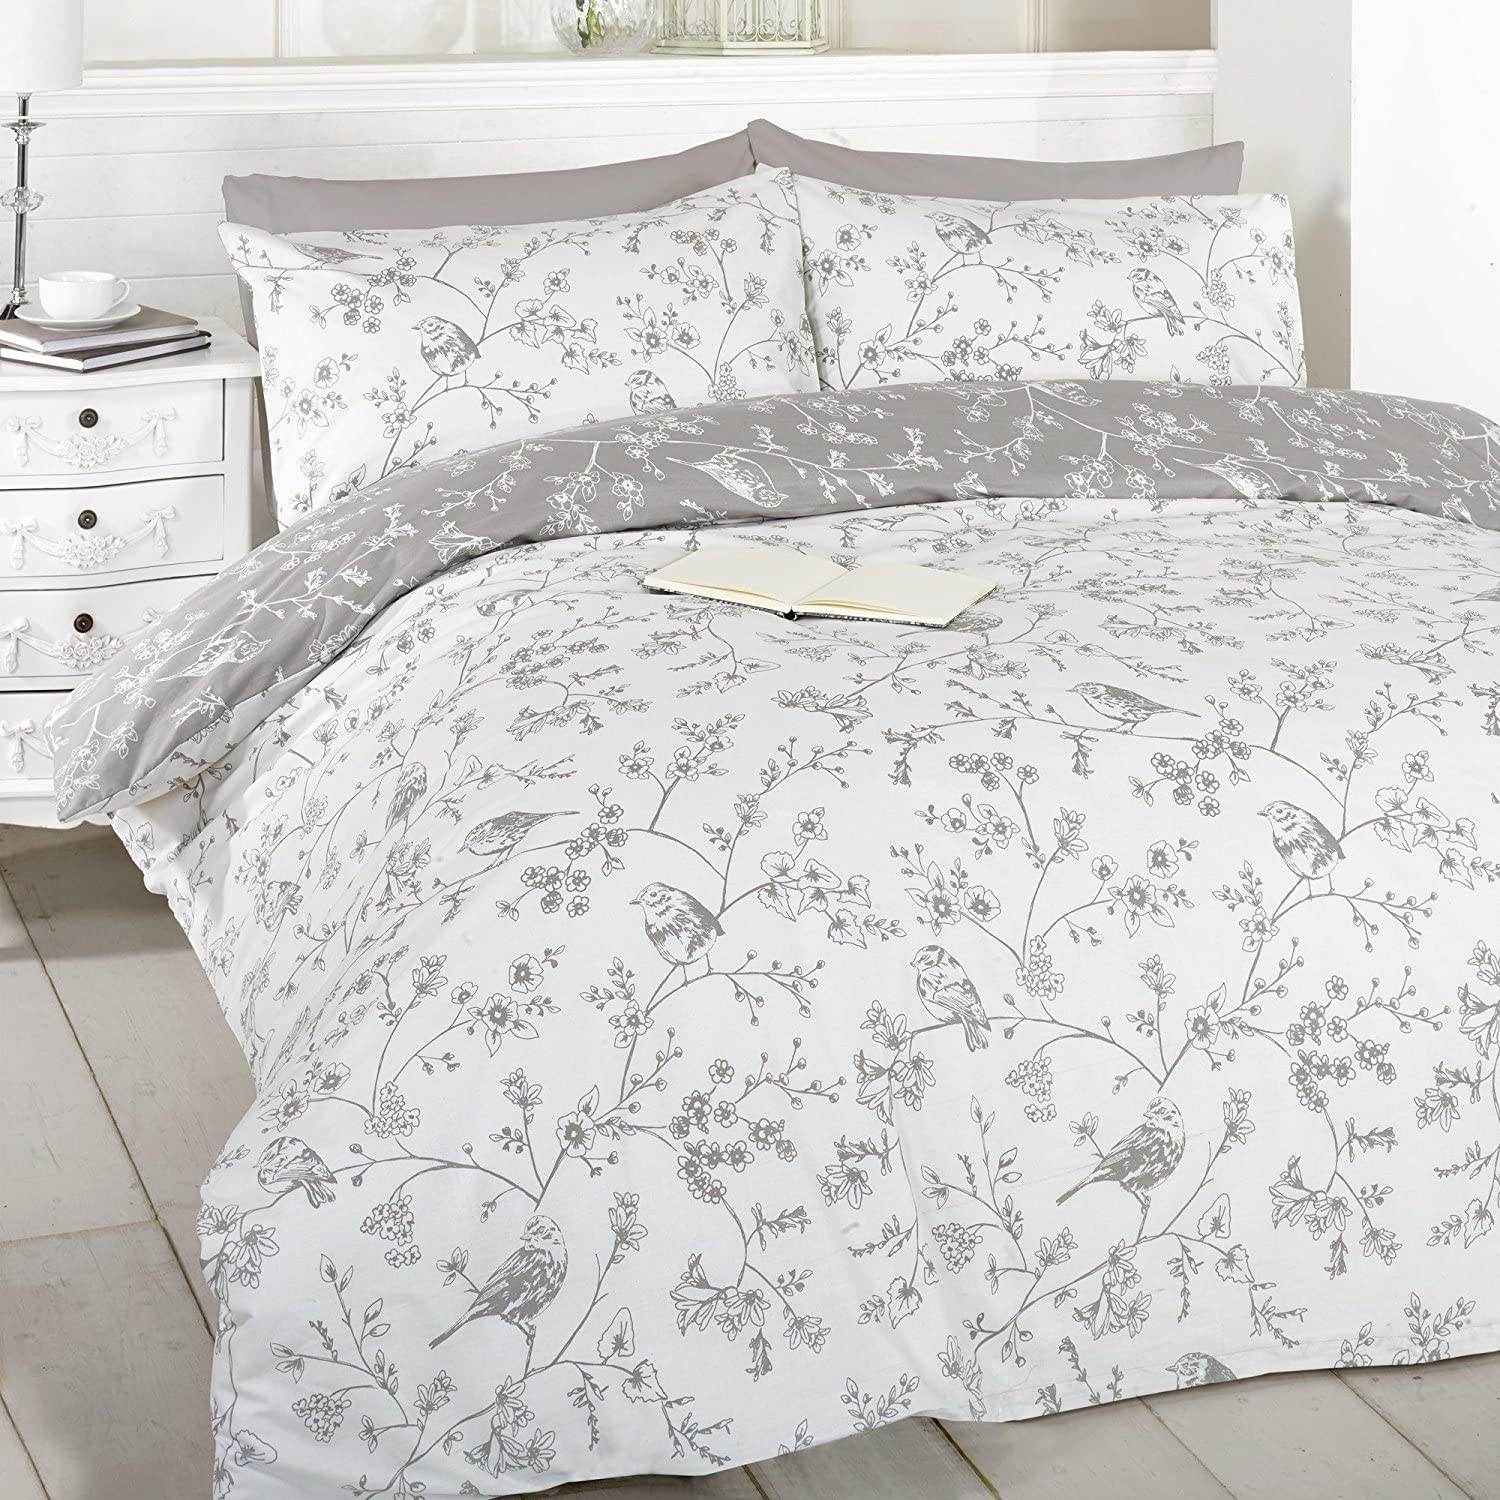 French Bird Toile Duvet Cover Set (Taupe, King) by Art